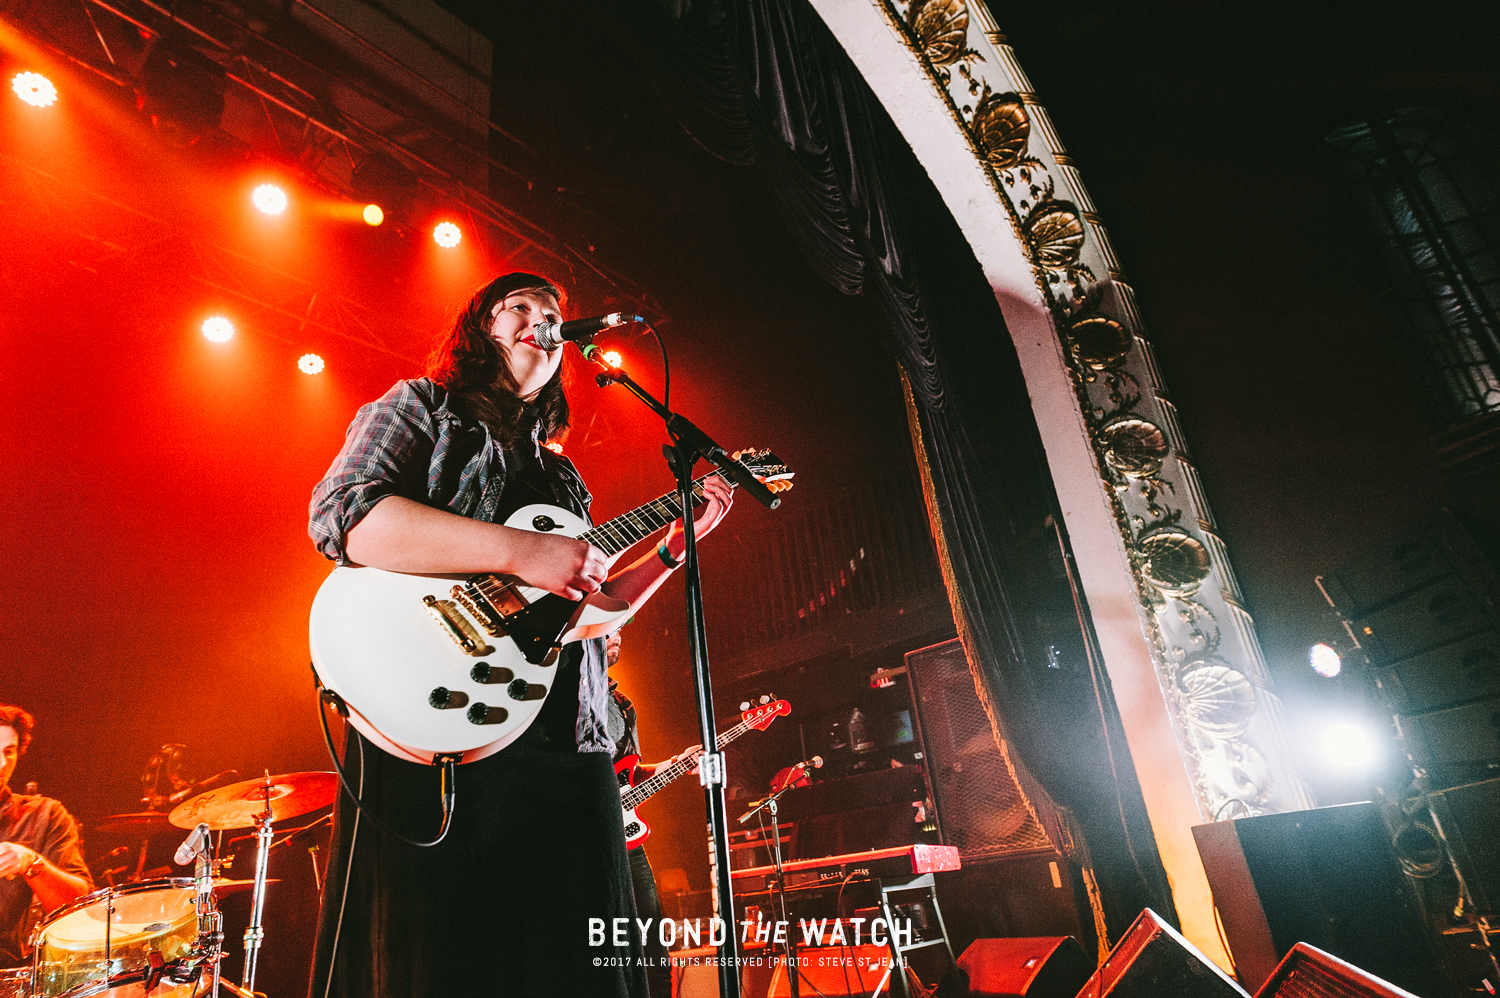 Lucy Dacus at The Opera House